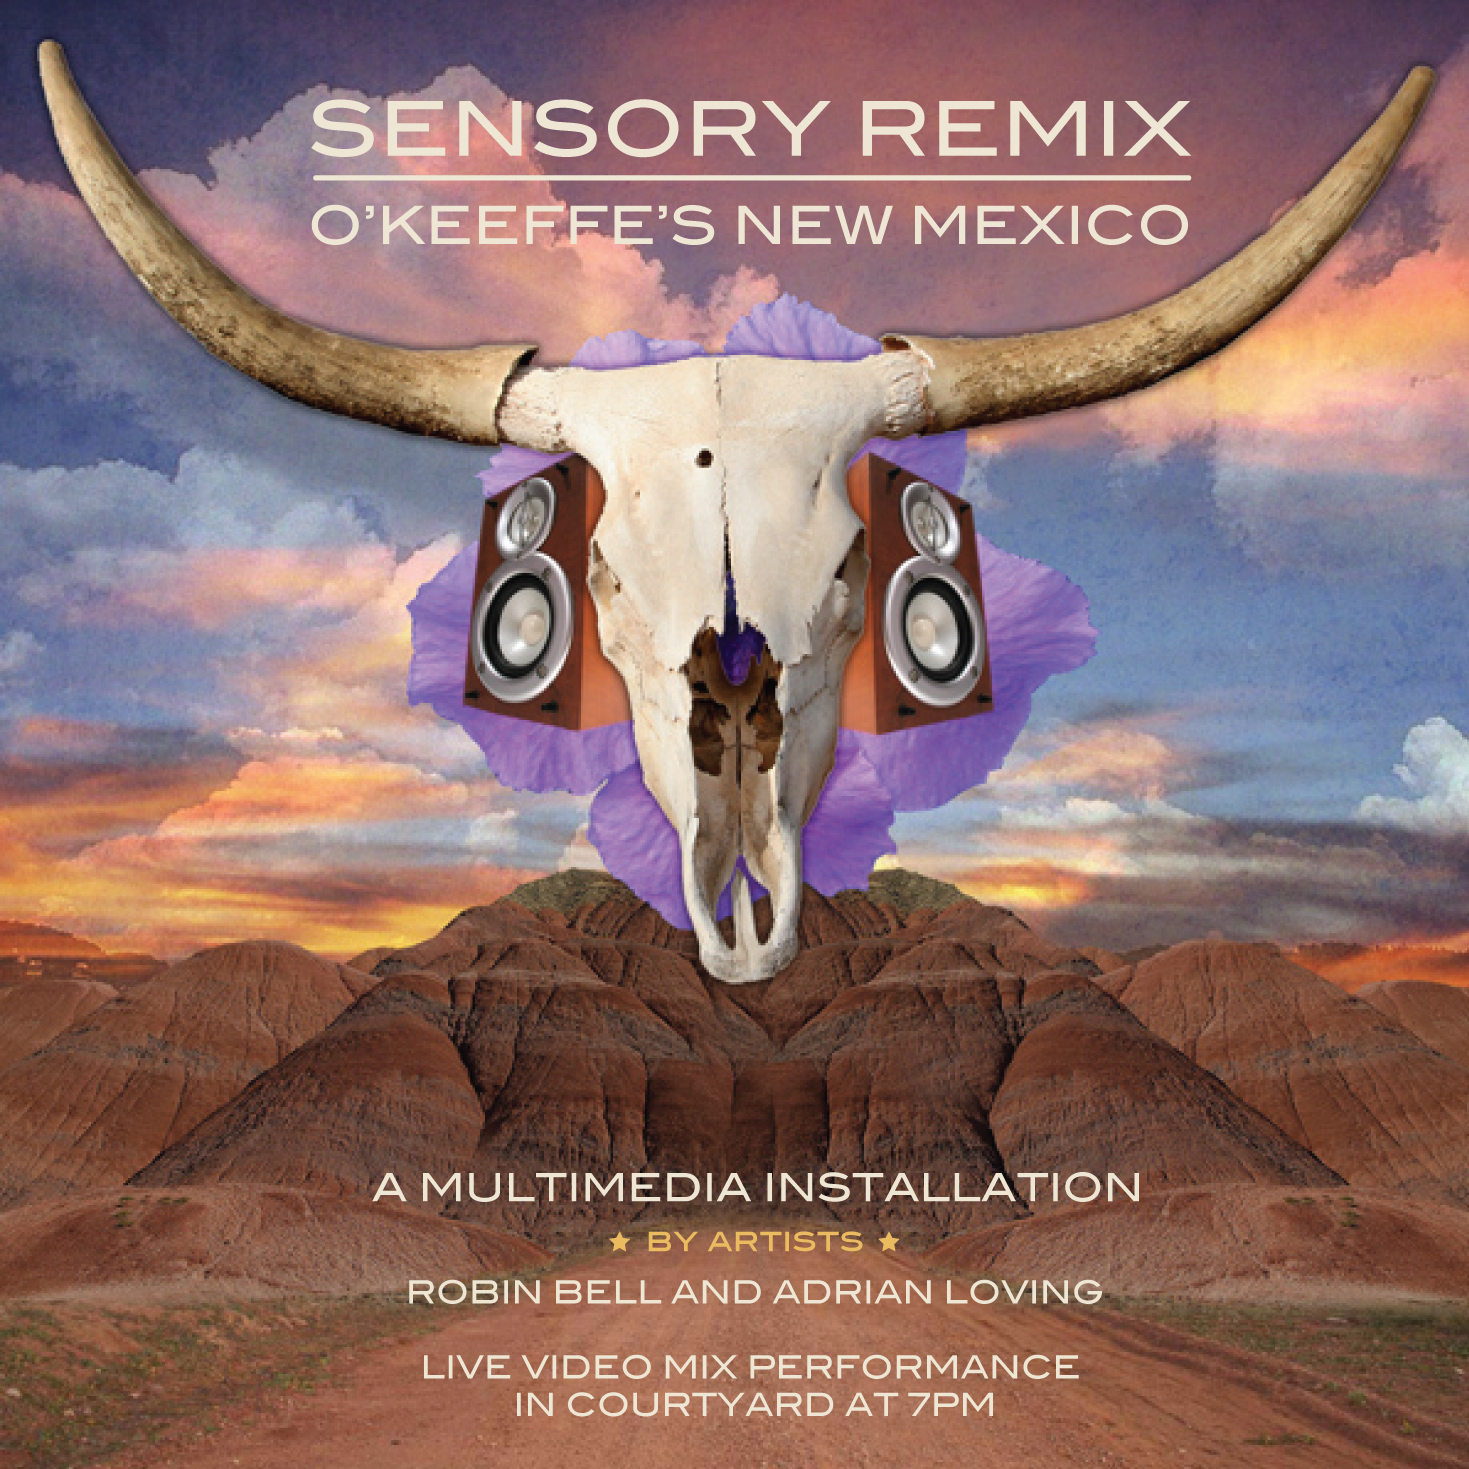 SENSORY REMIX | O'KEEFE'S NEW MEXICO